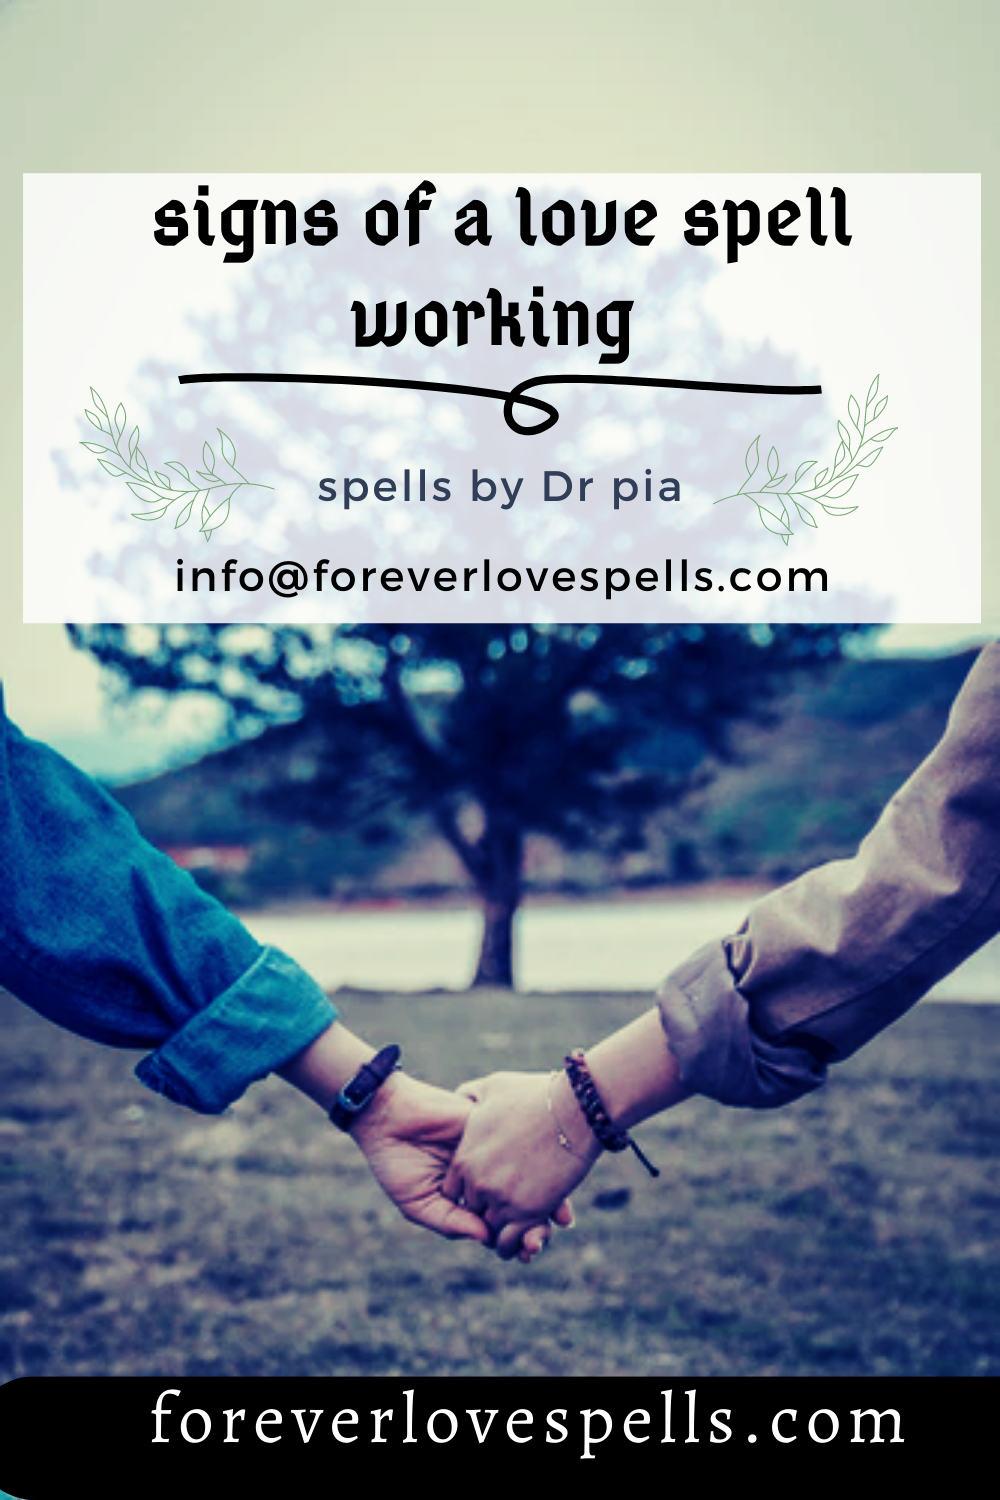 signs of a love spell working | Love spells, Spelling